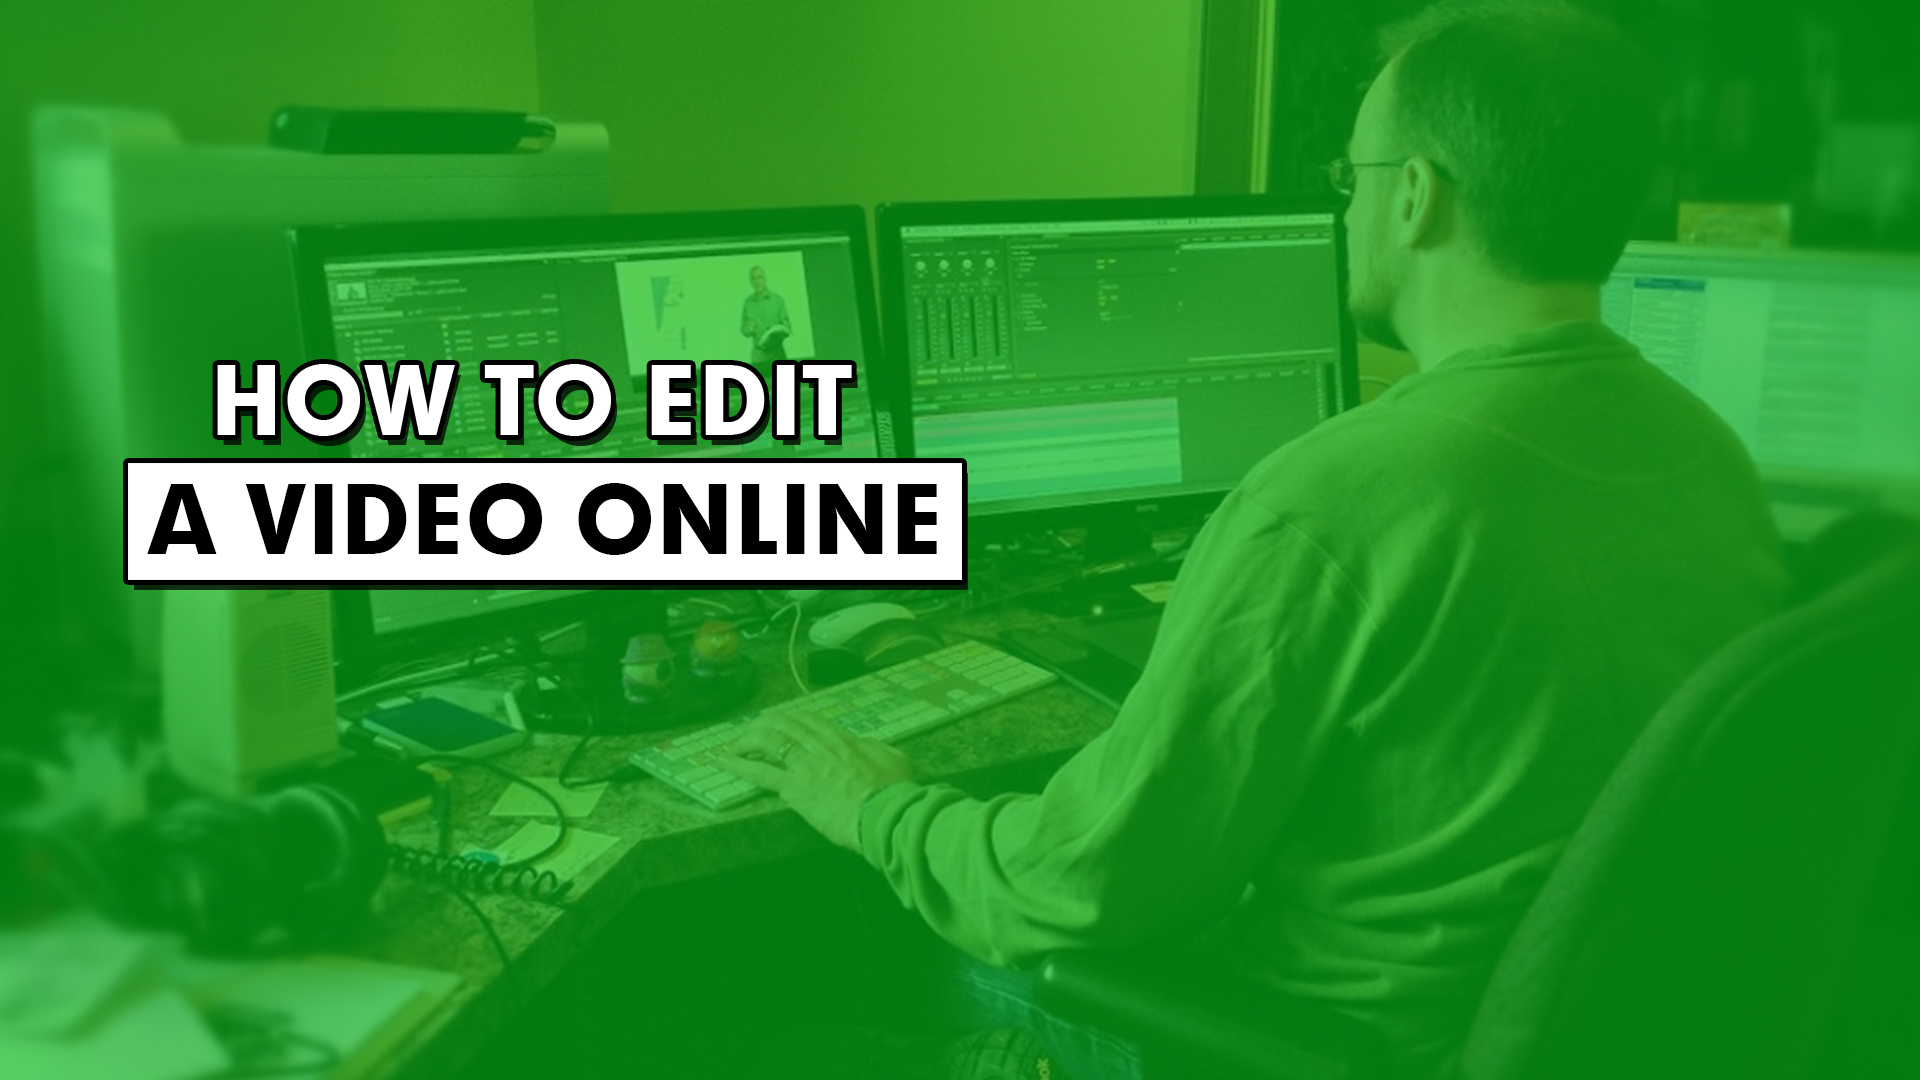 How to edit a video online